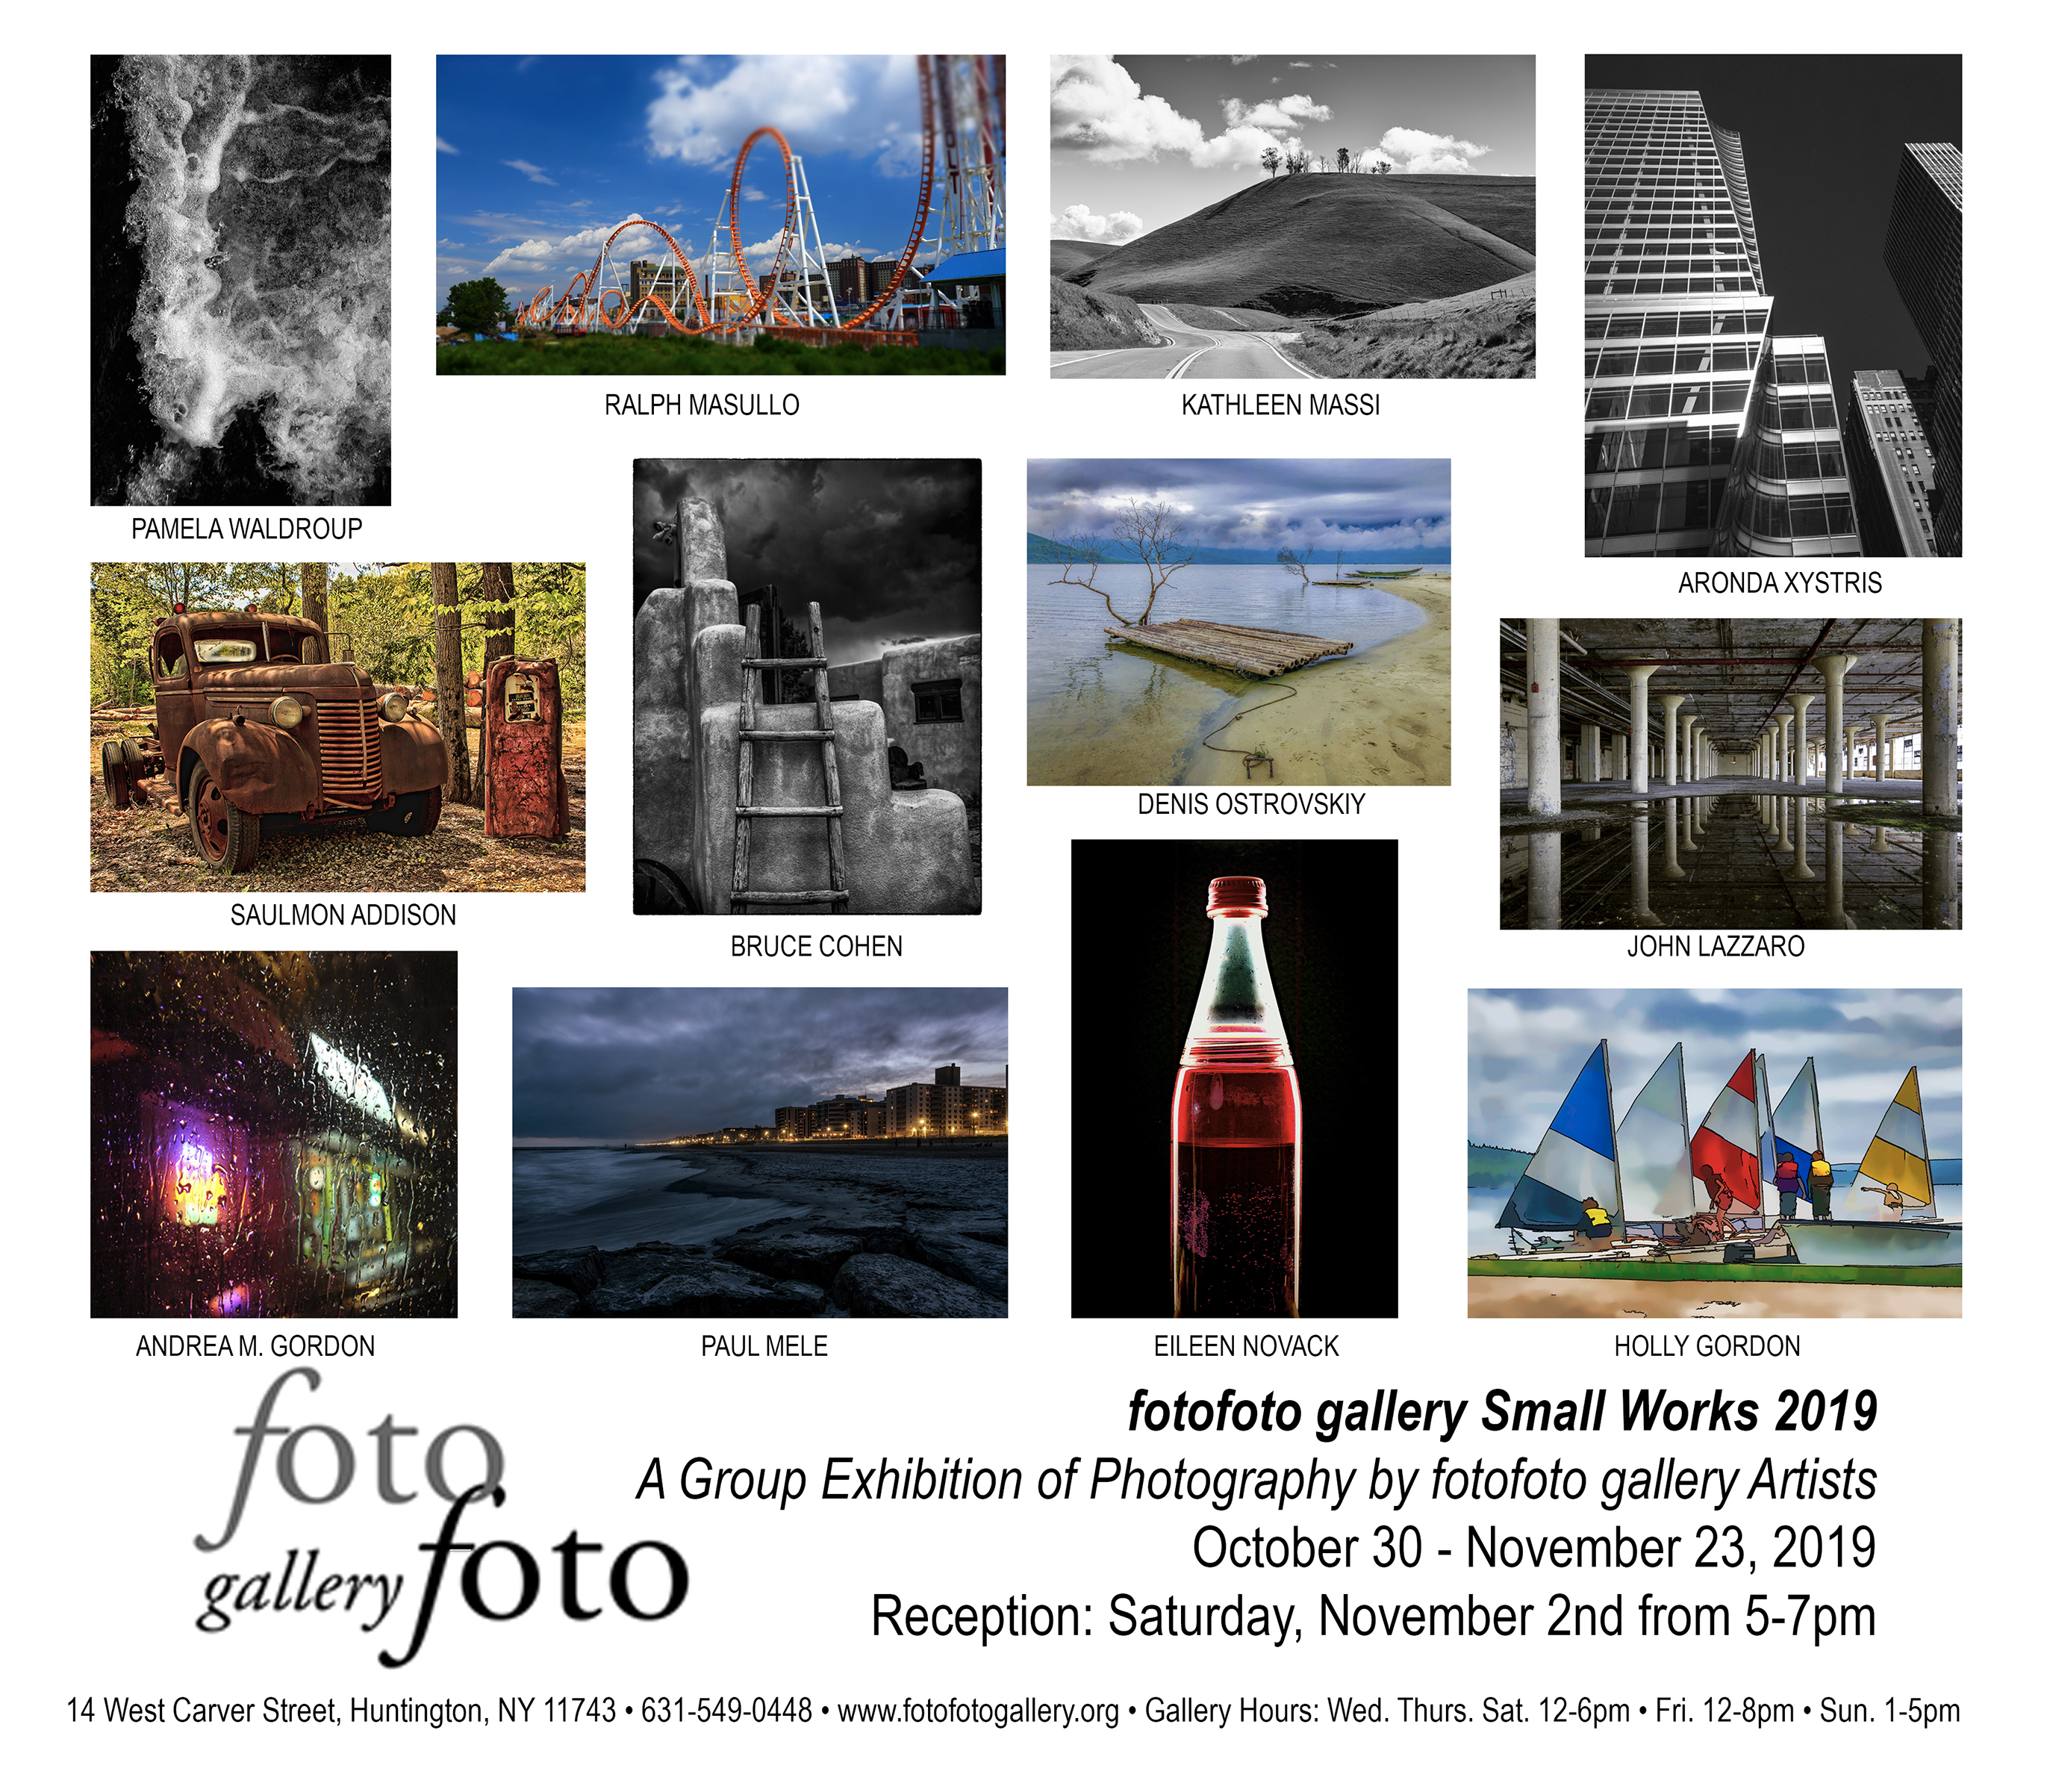 fotofoto_Small_Works_2019_Exhibit